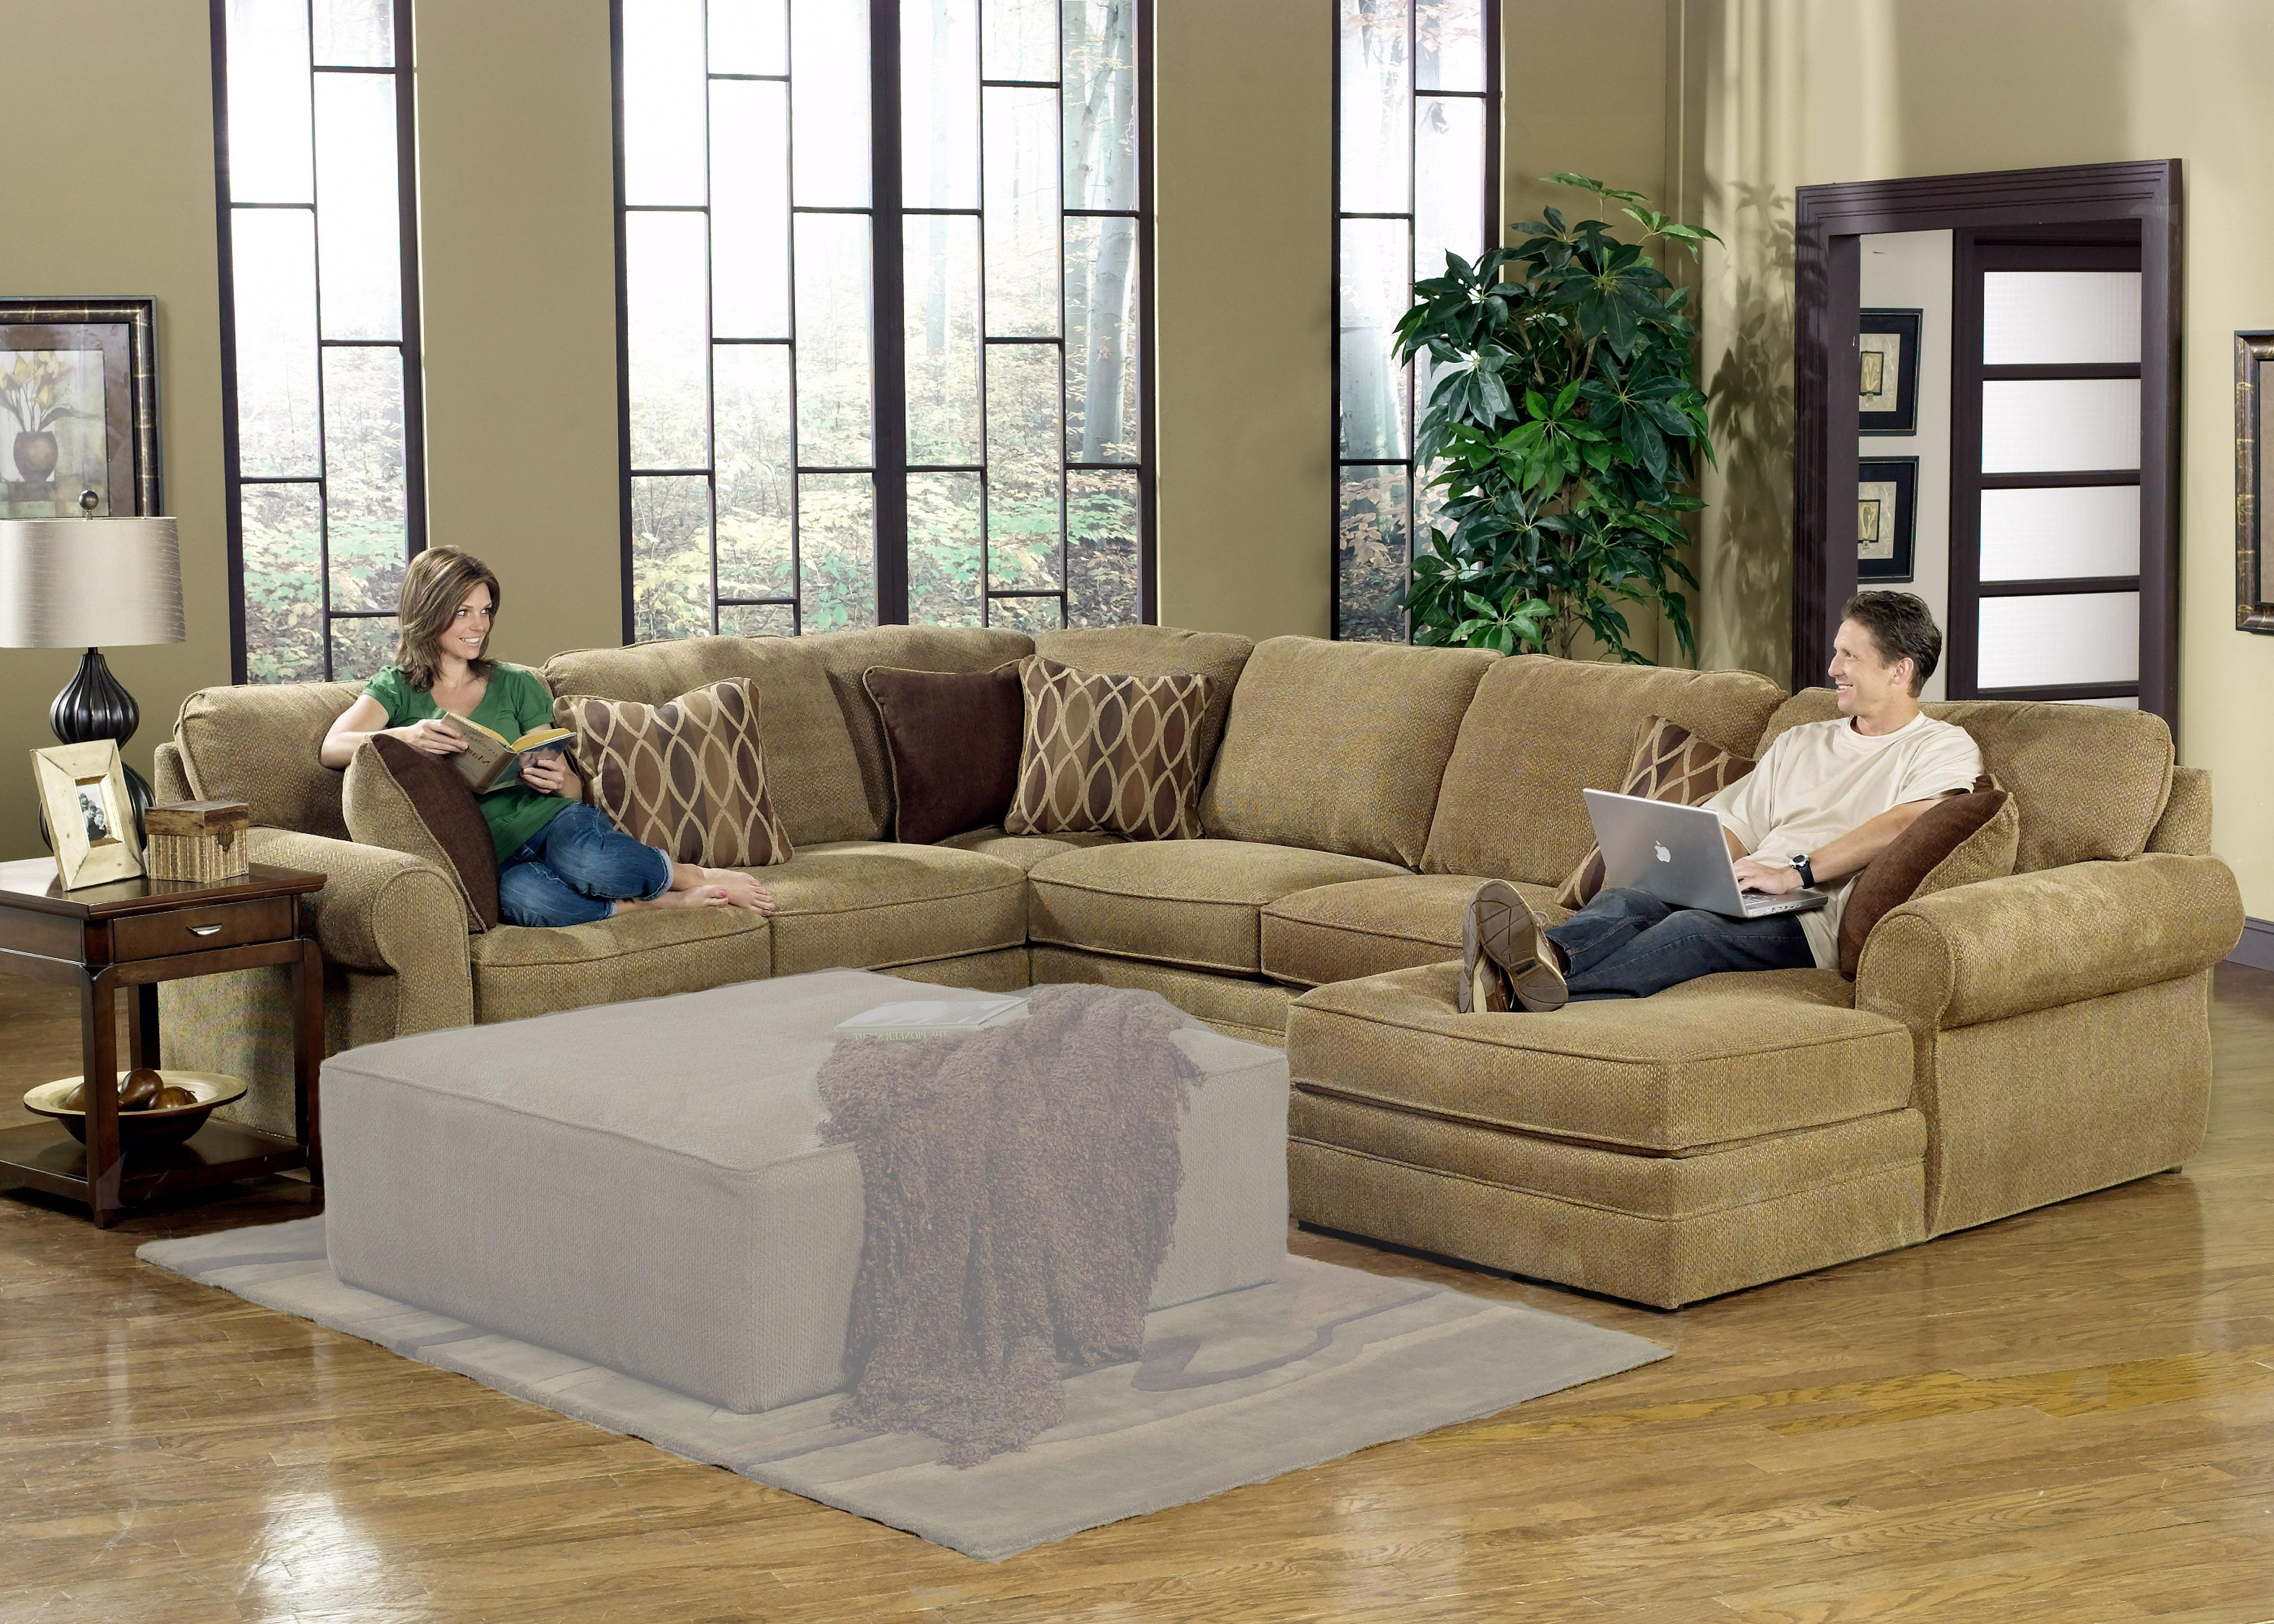 Sectional Sofa Design: Adorable Large U Shaped Sectional Sofa U Pertaining To Most Up To Date Extra Large U Shaped Sectionals (View 15 of 20)